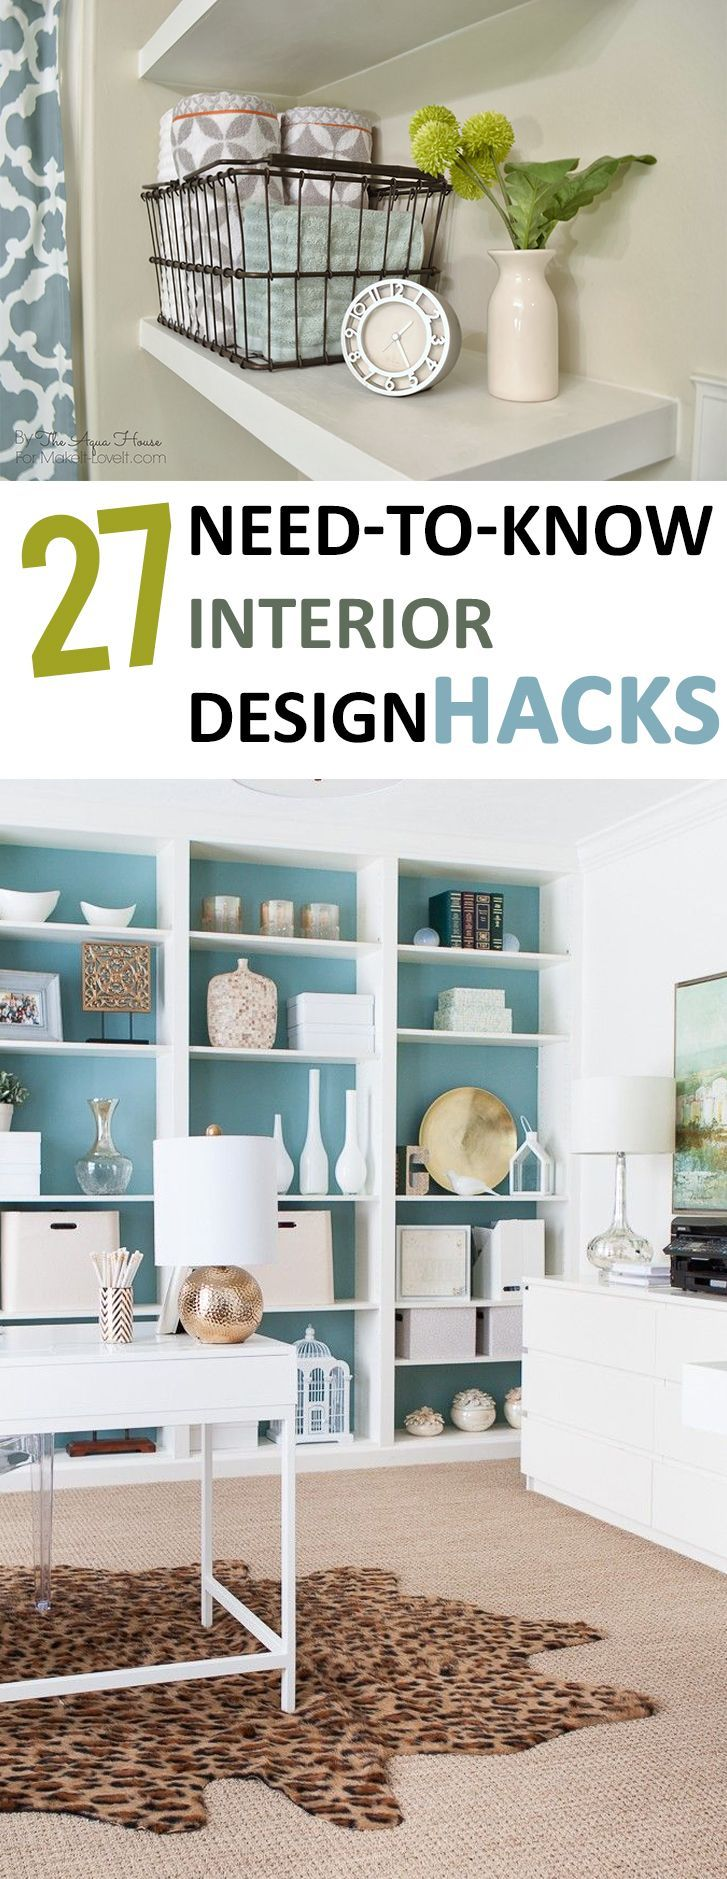 27 need to know interior design hacks